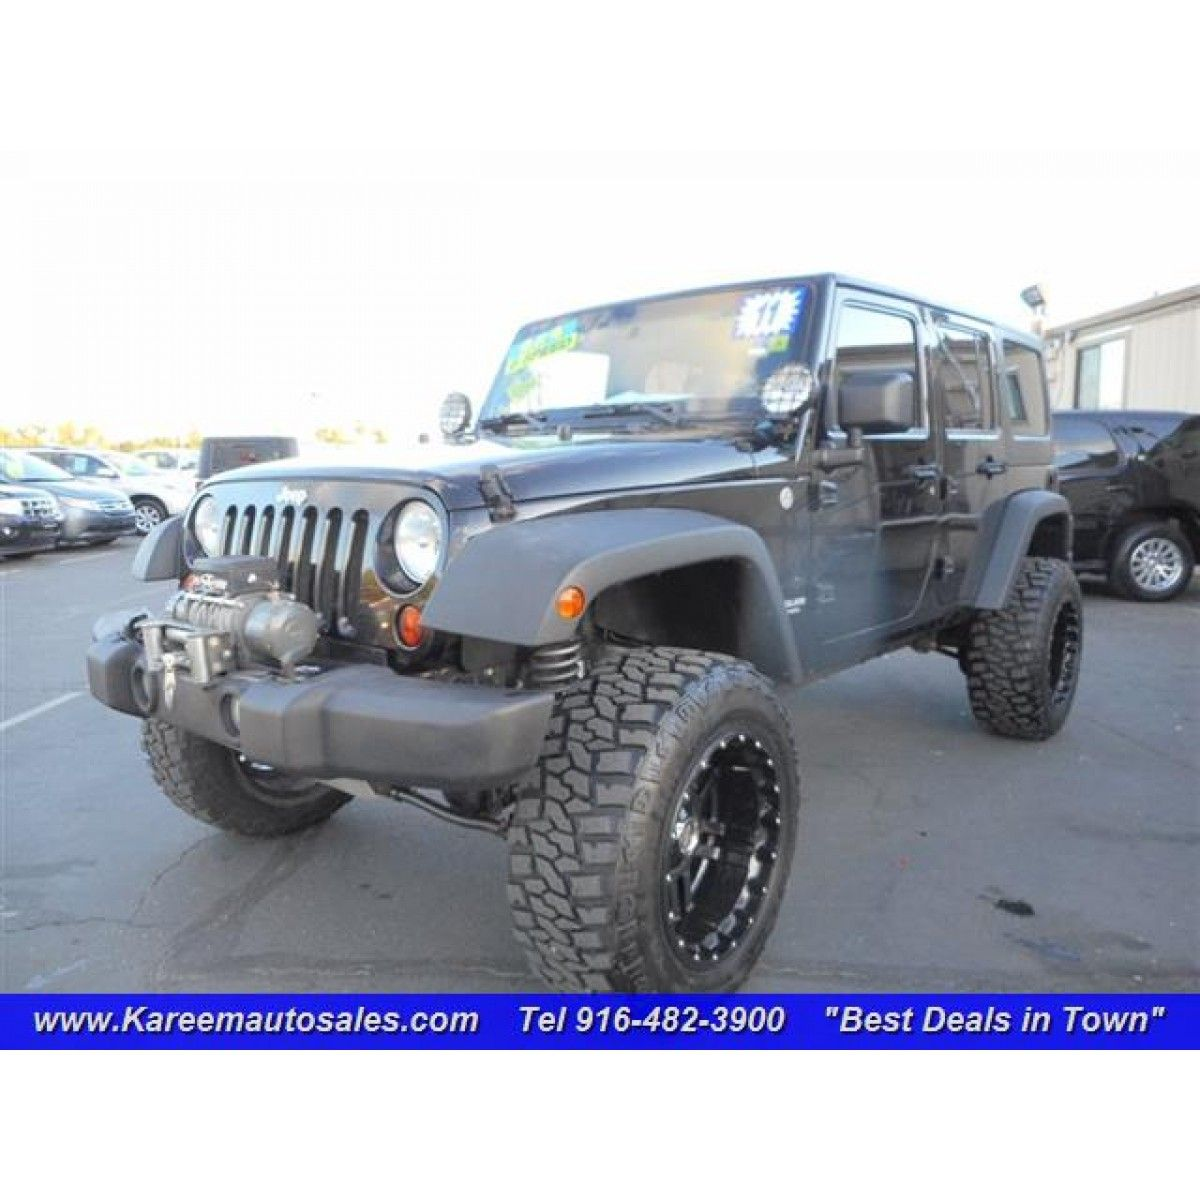 2011 jeep wrangler unlimited sport 4wd unlimited sport 4wd kareem auto sale 916 482